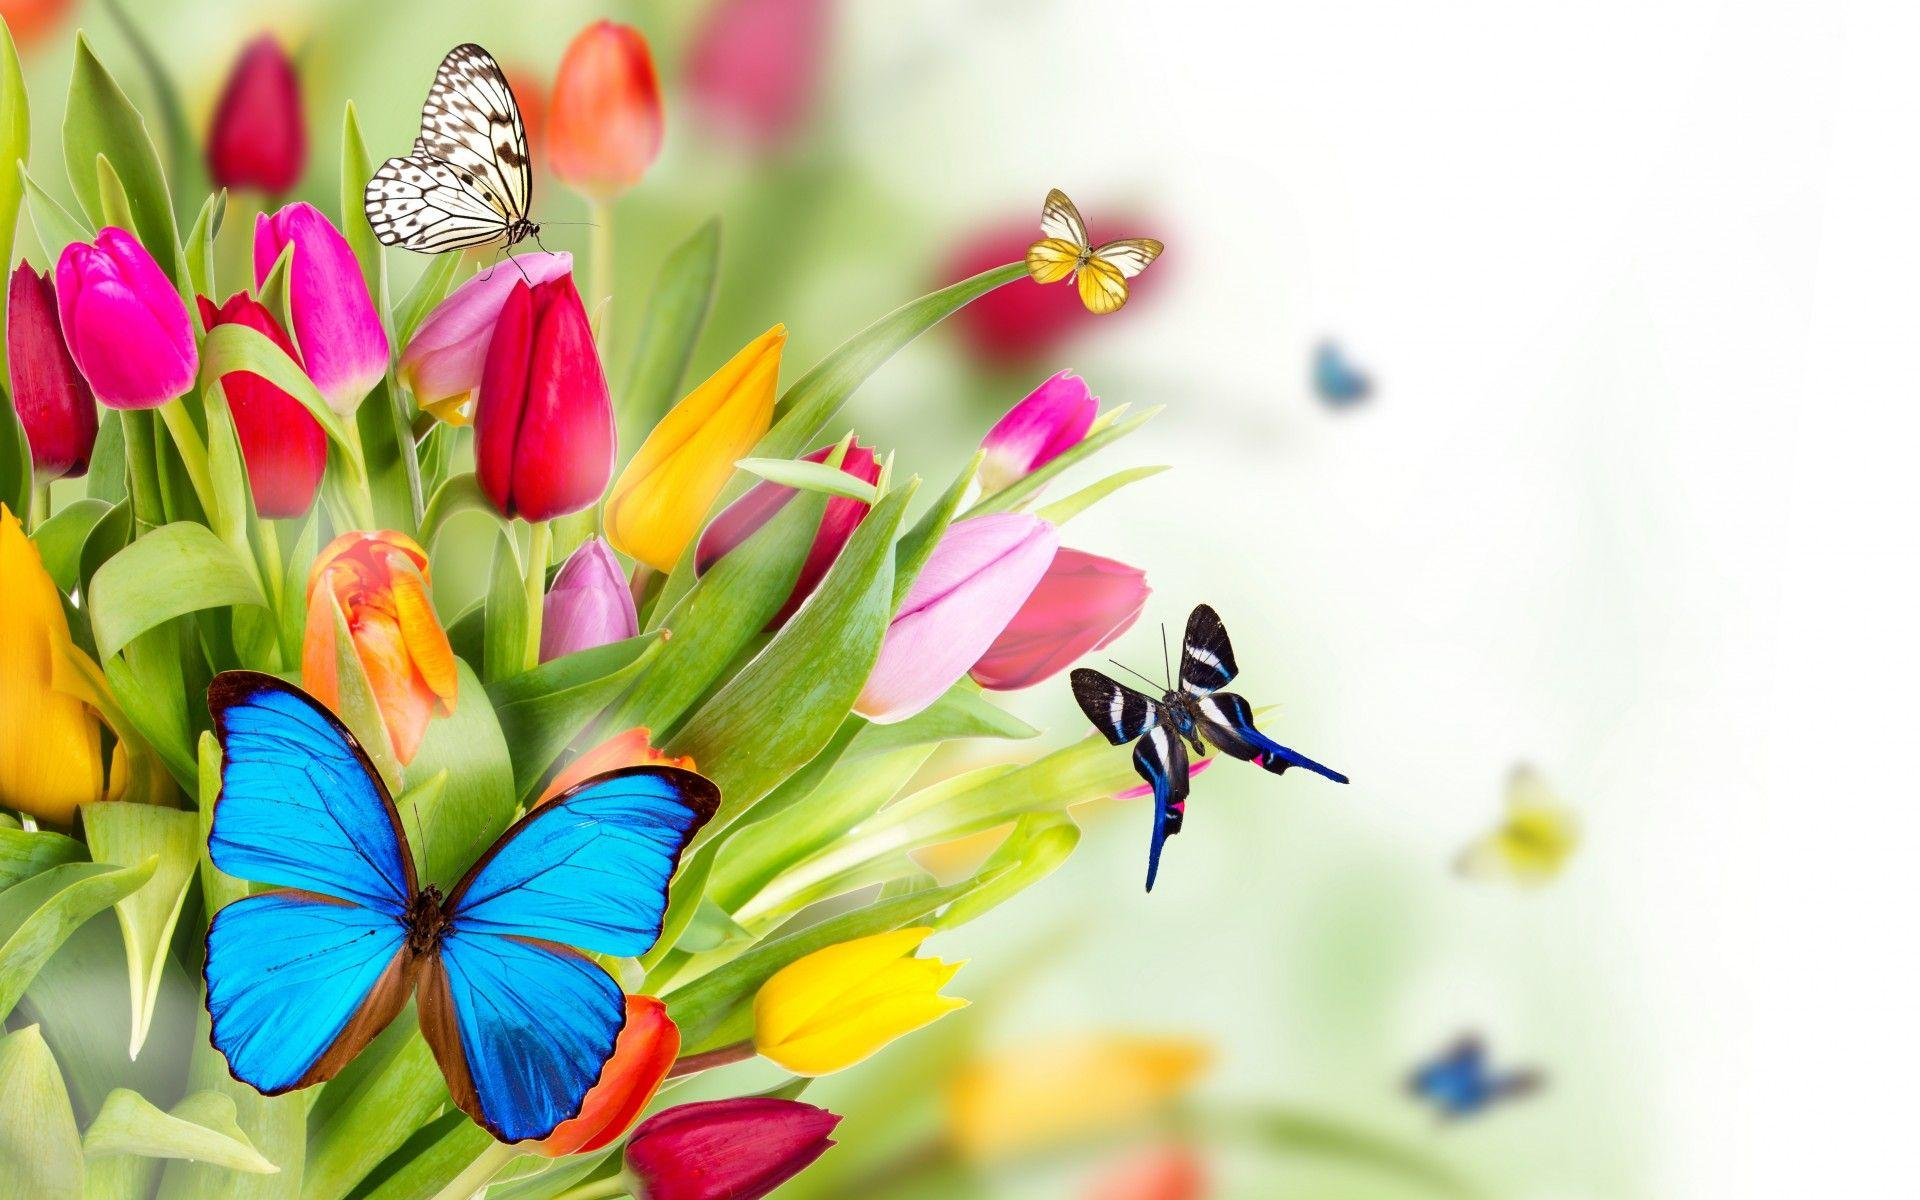 Flowers Wallpapers Pack Download V.83 - Wallpapers and Pictures ...